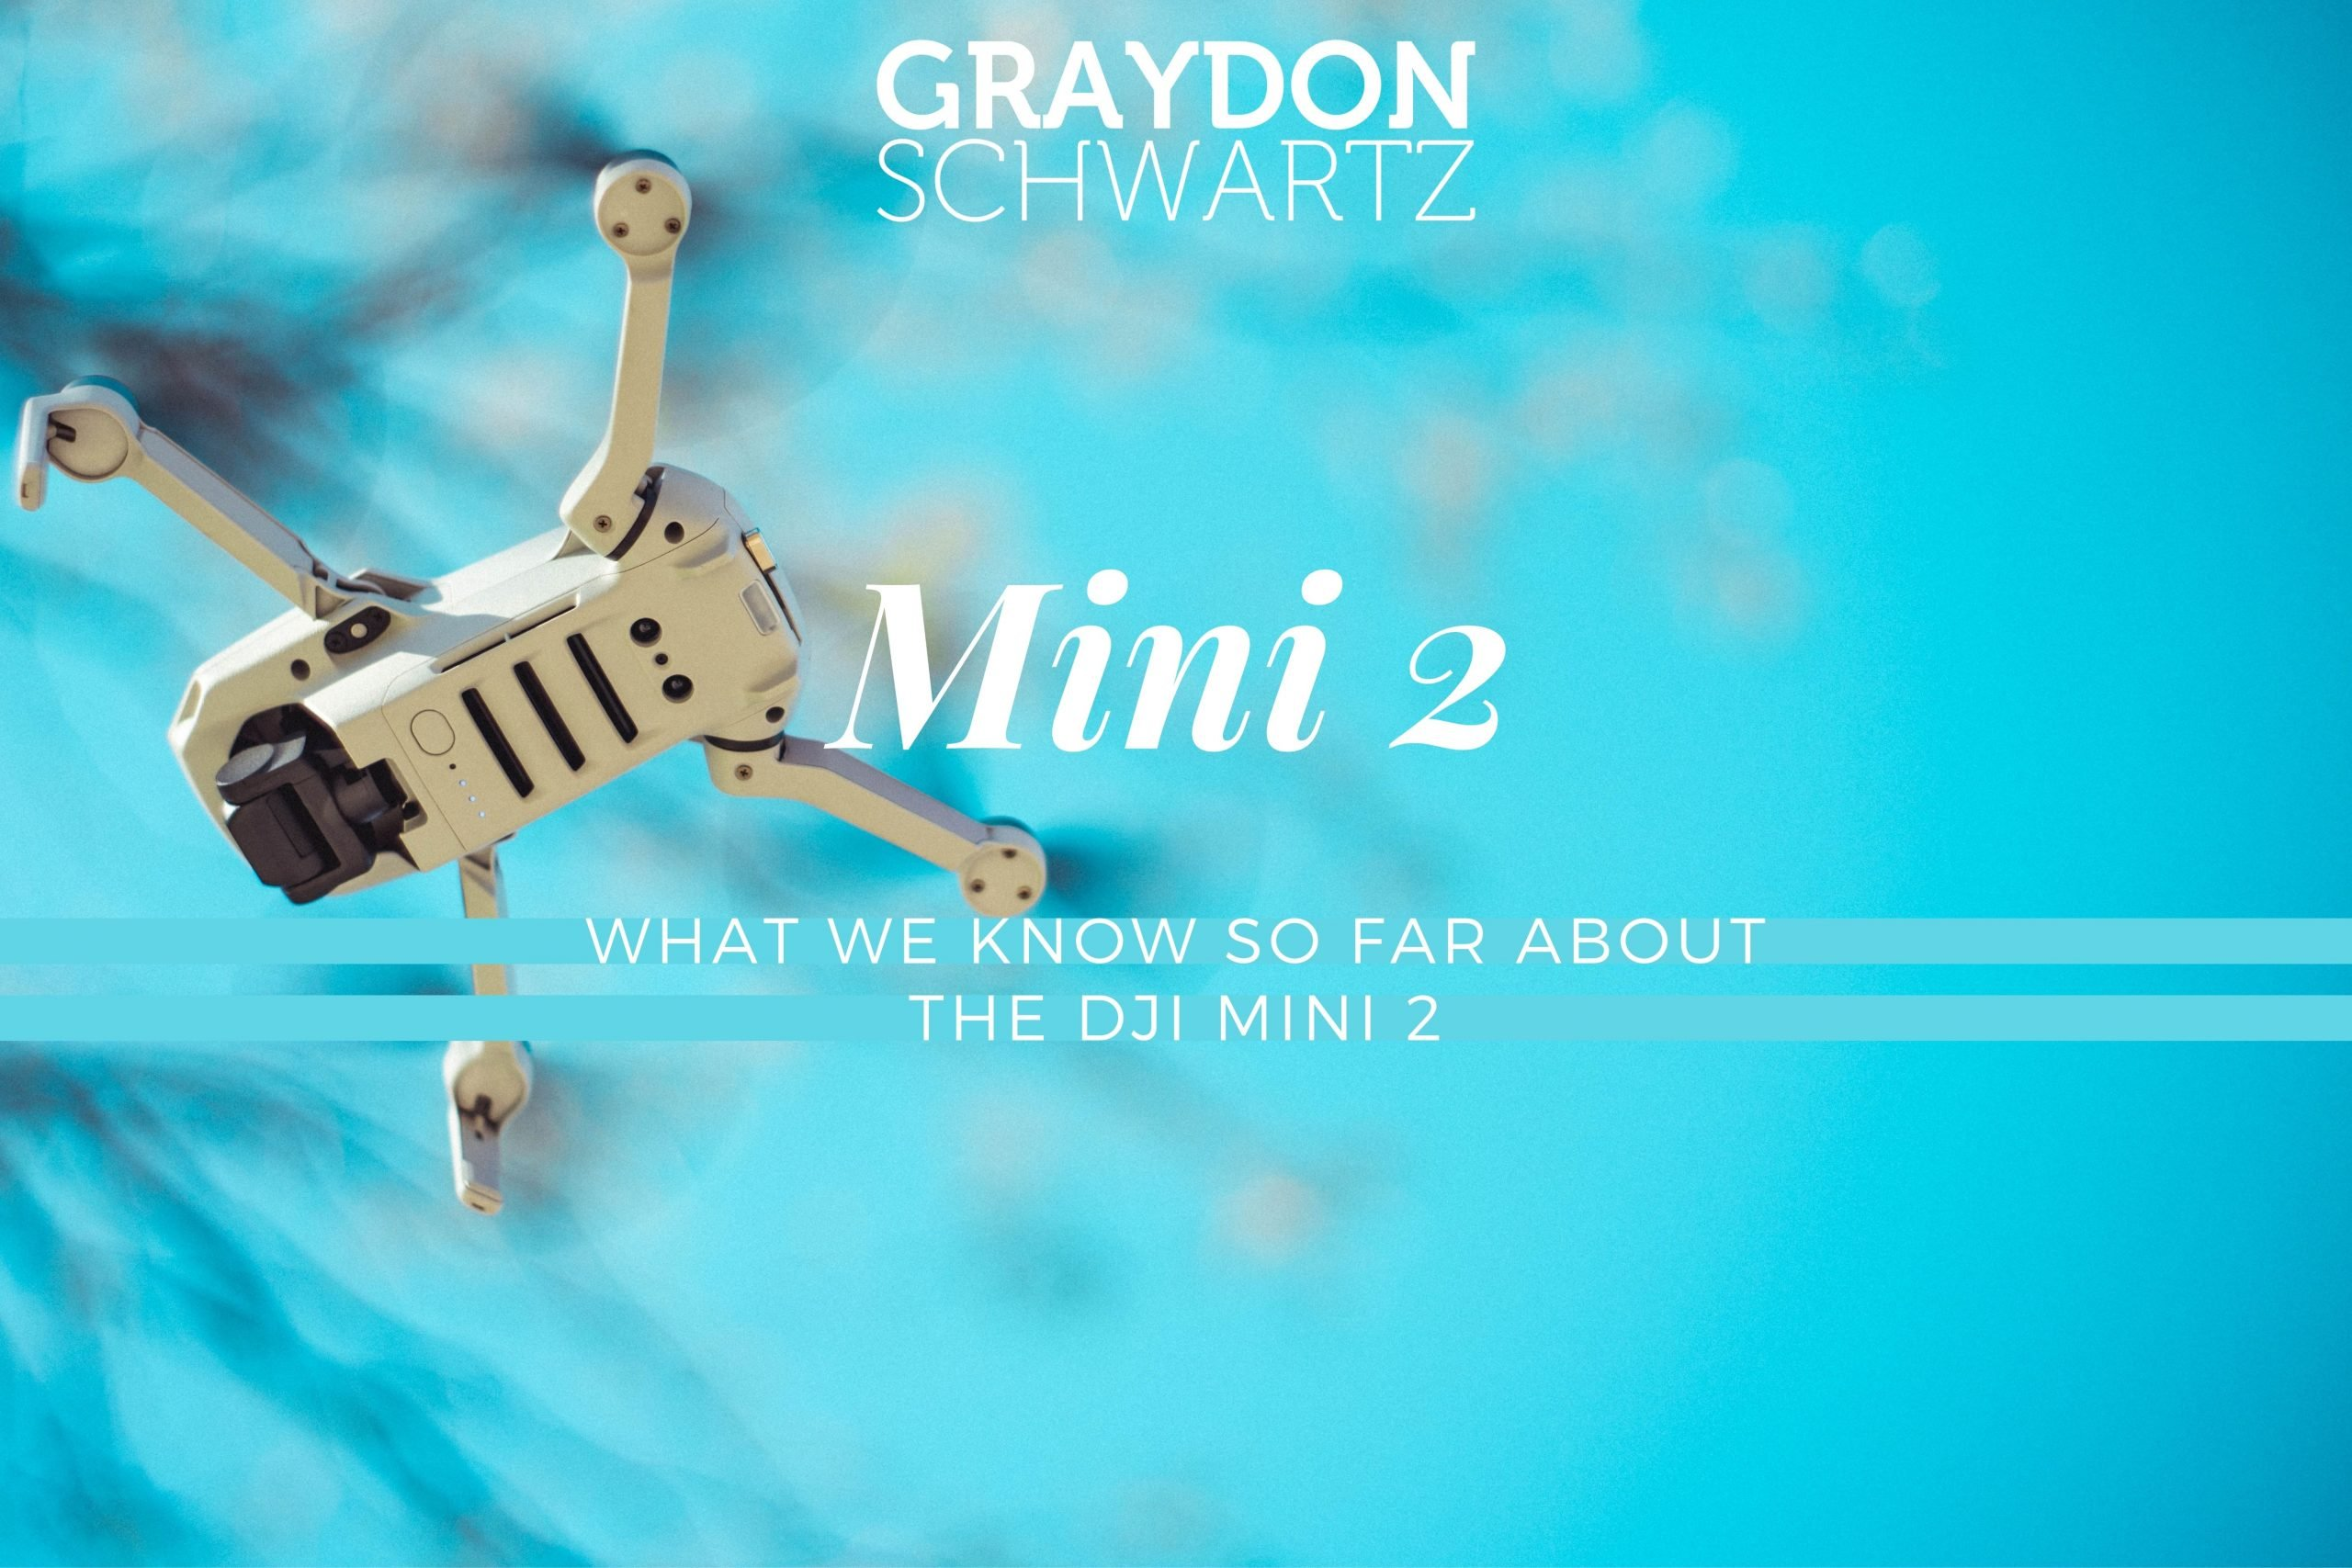 What We Know So Far About the DJI Mini 2